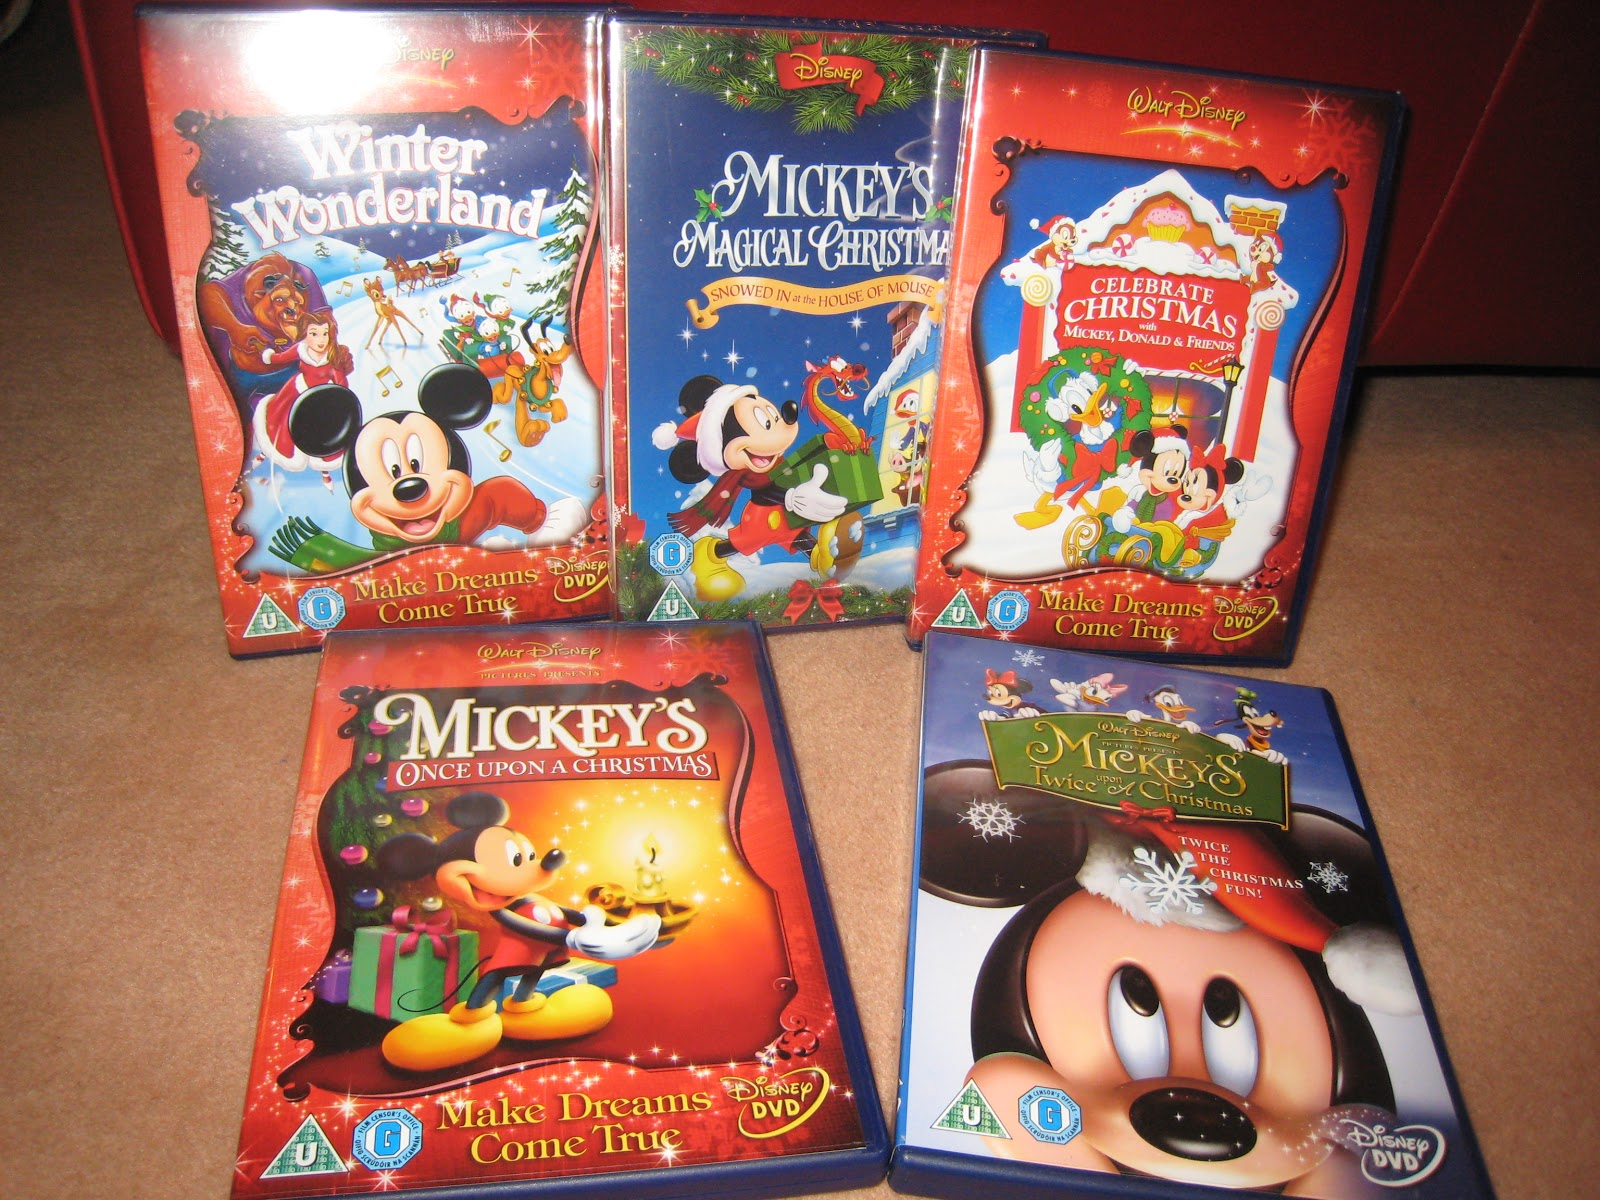 jp2mk countdown to christmas day 20 - Mickeys Once Upon A Christmas Vhs